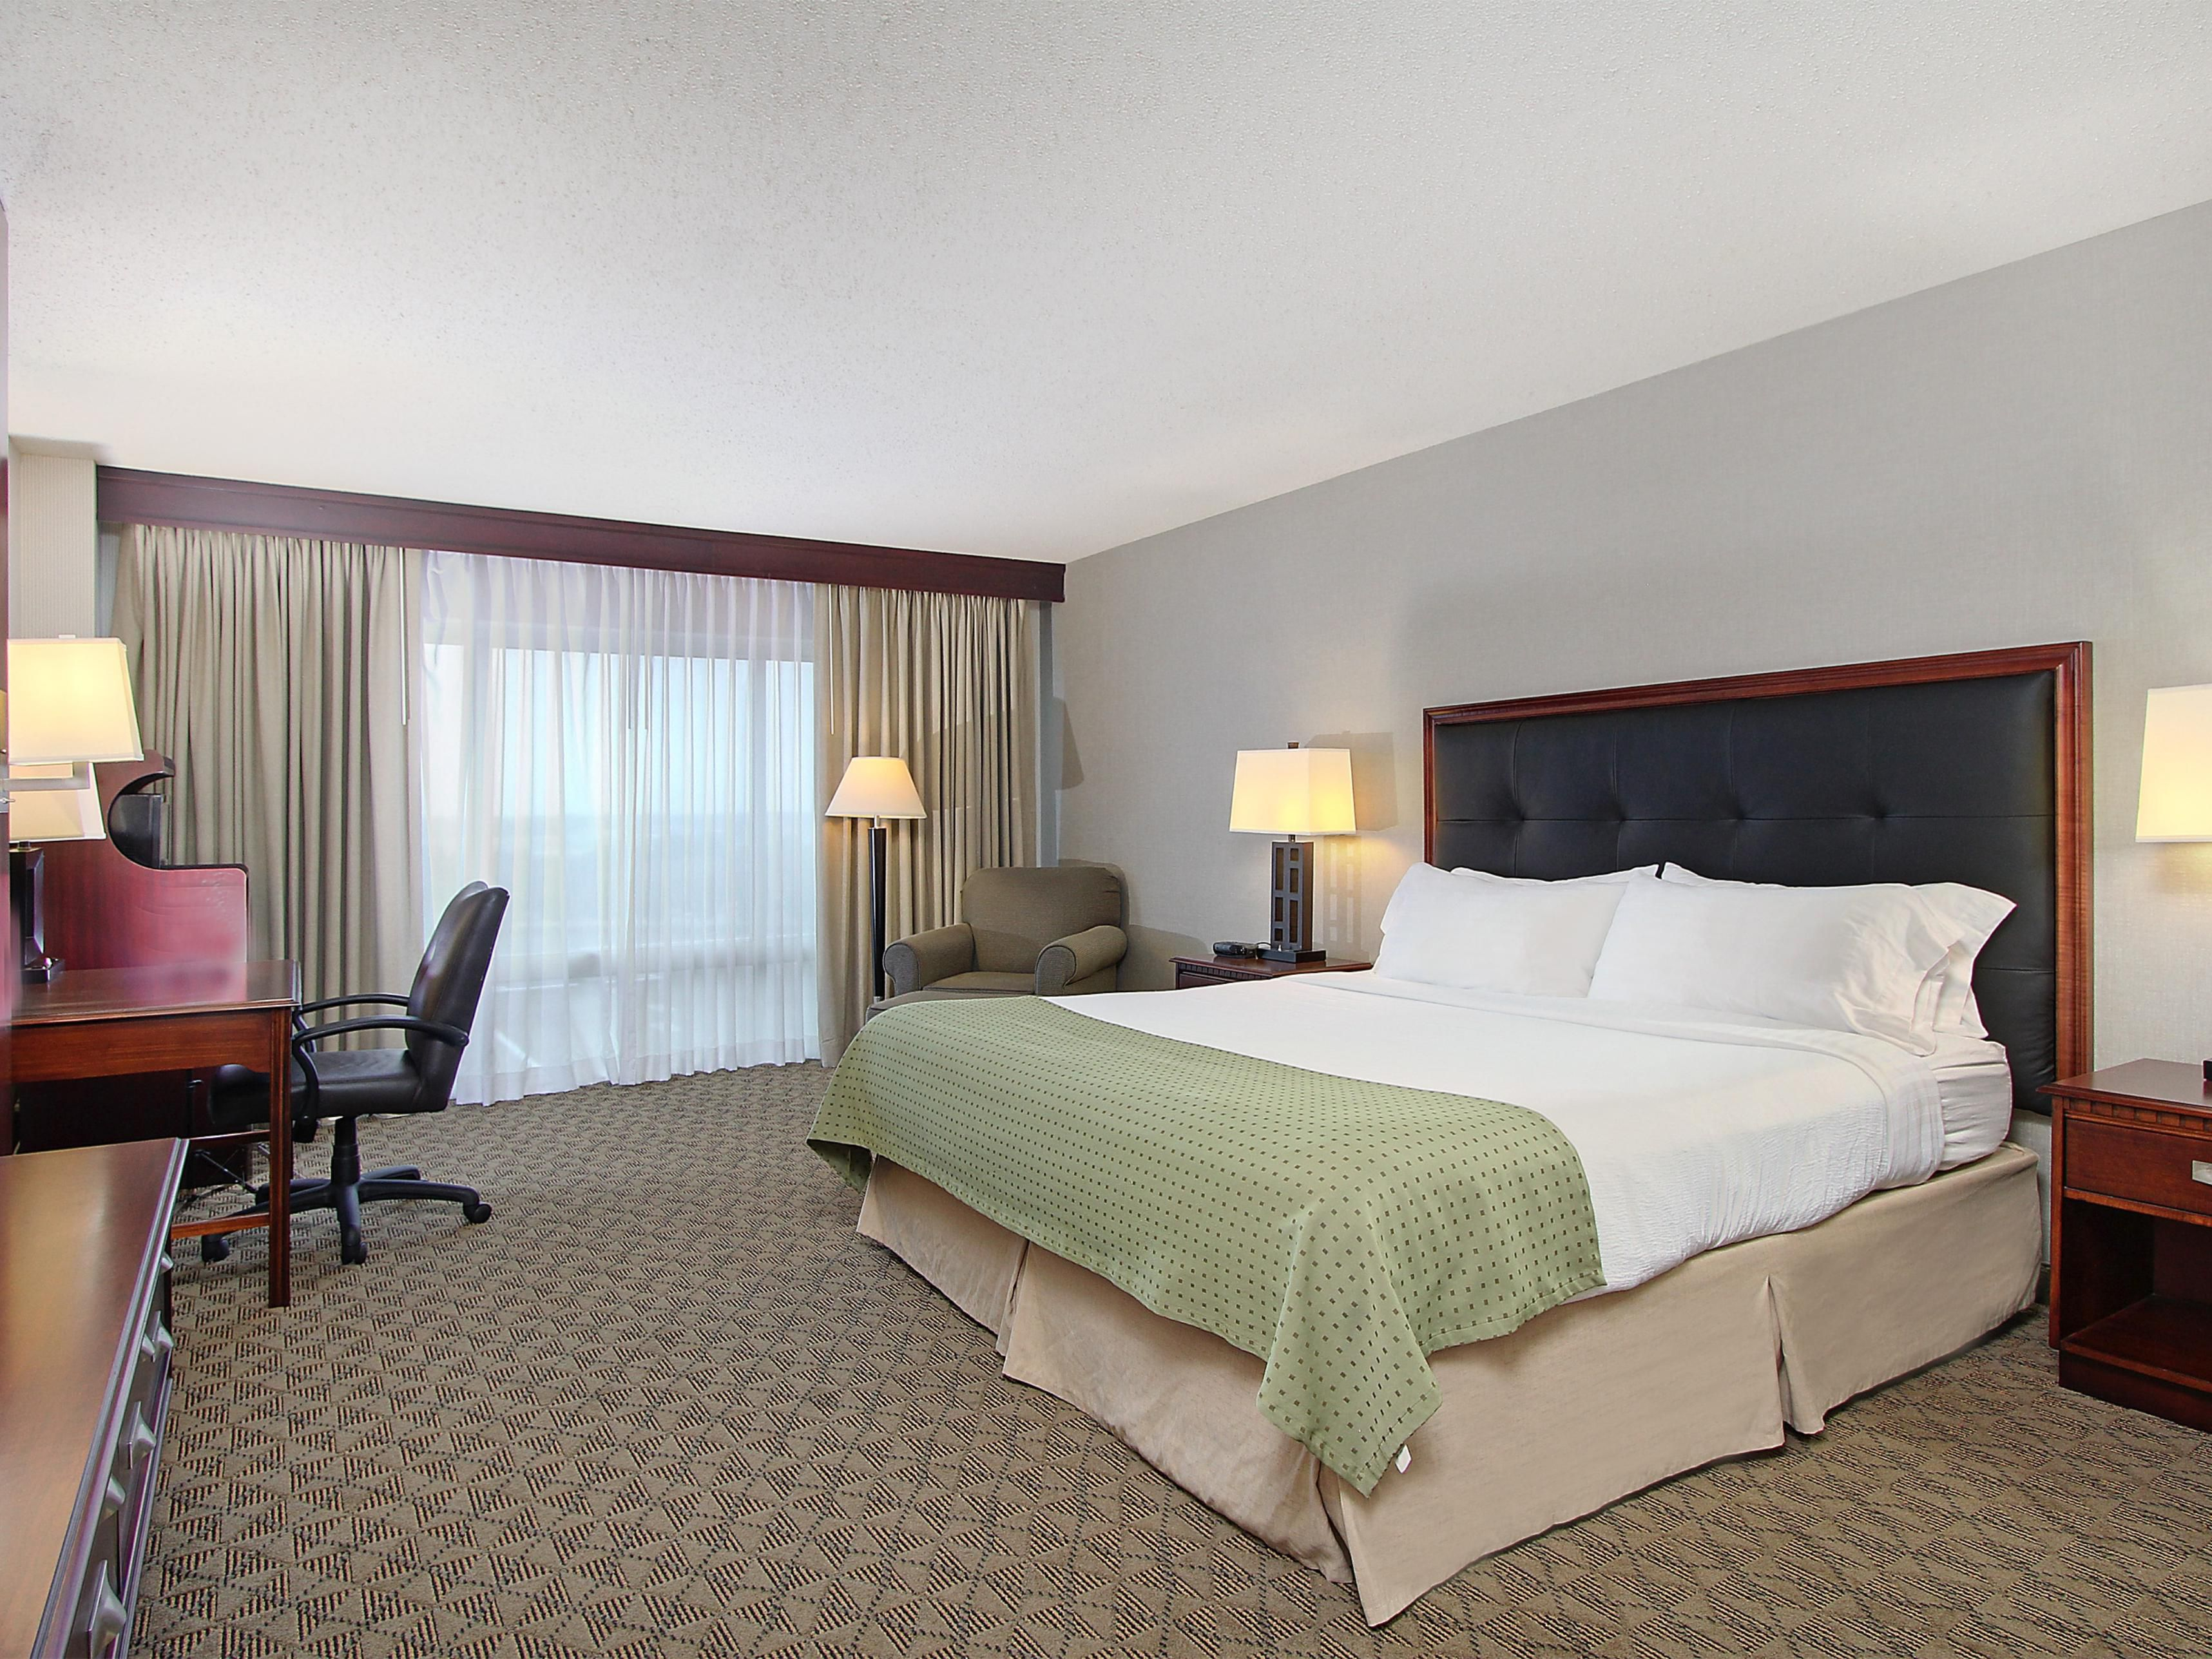 Relax in your guestroom at the Holiday Inn Bowling Green